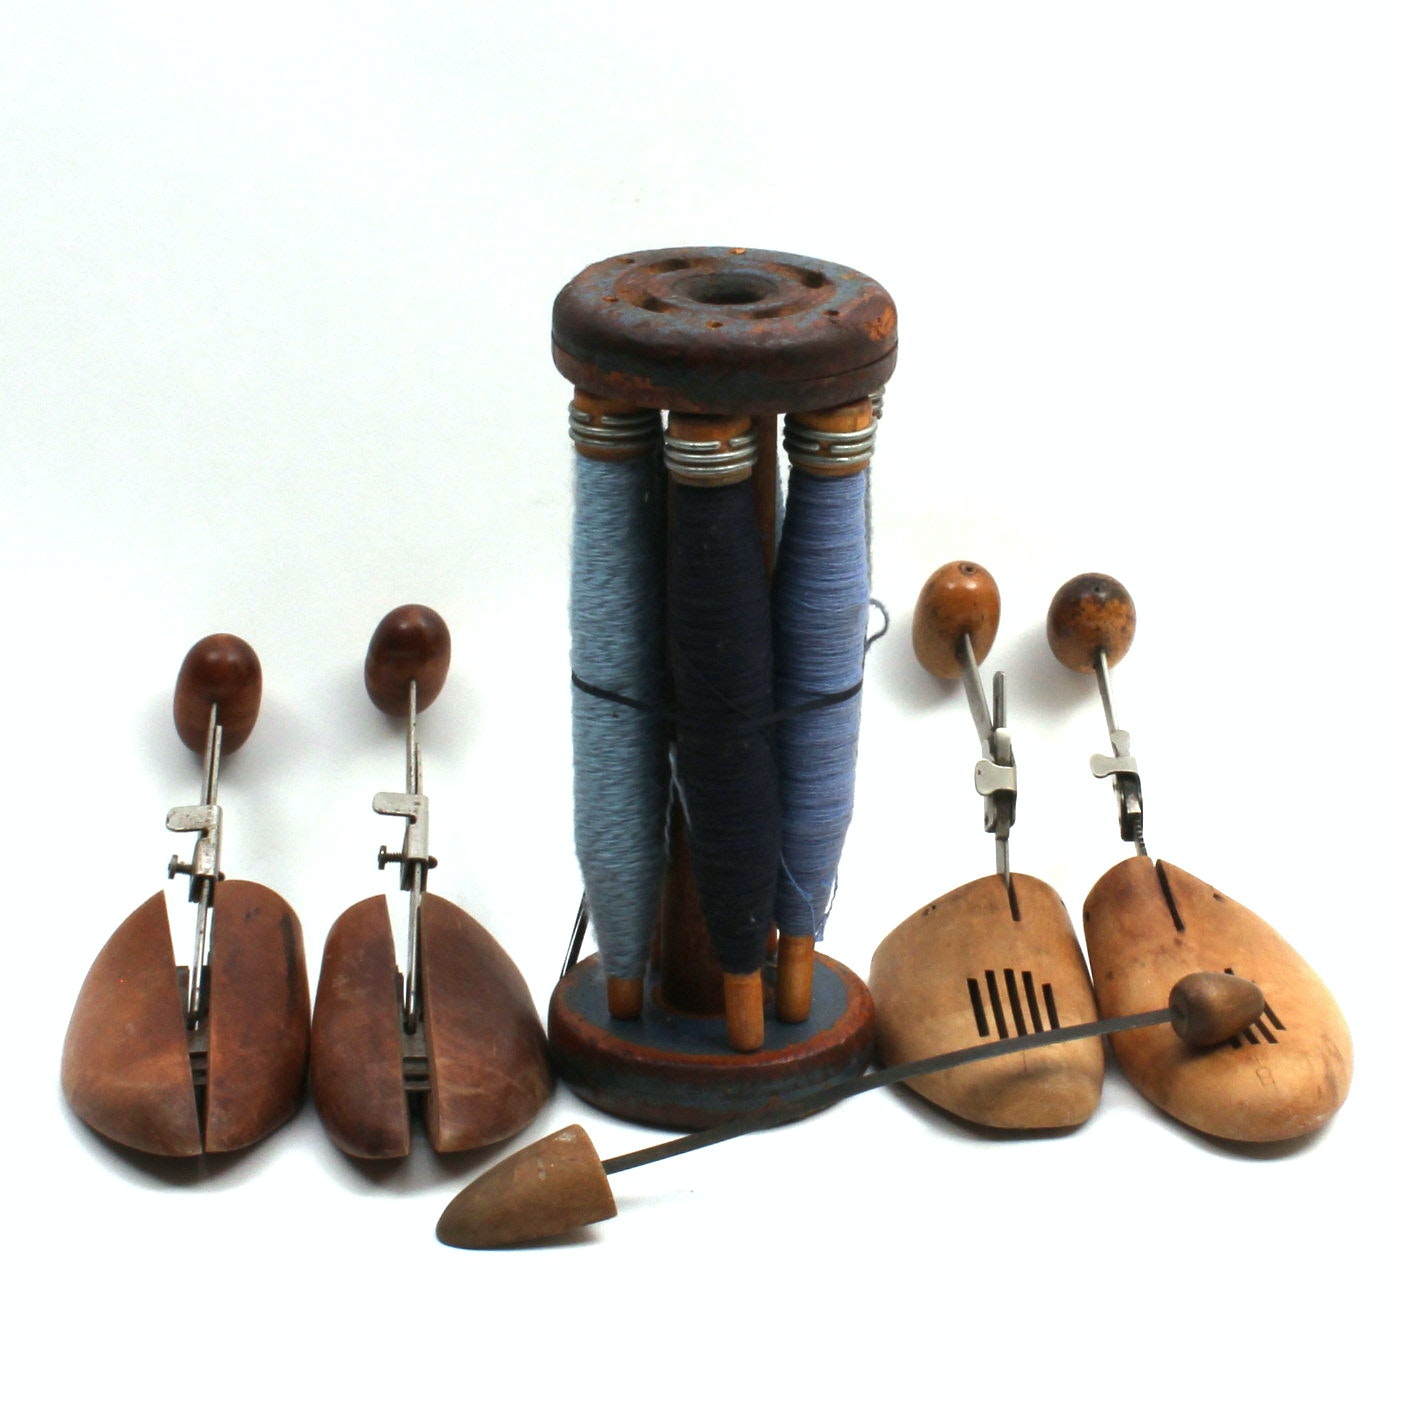 Vintage Spools With Thread and Shoe Stretchers